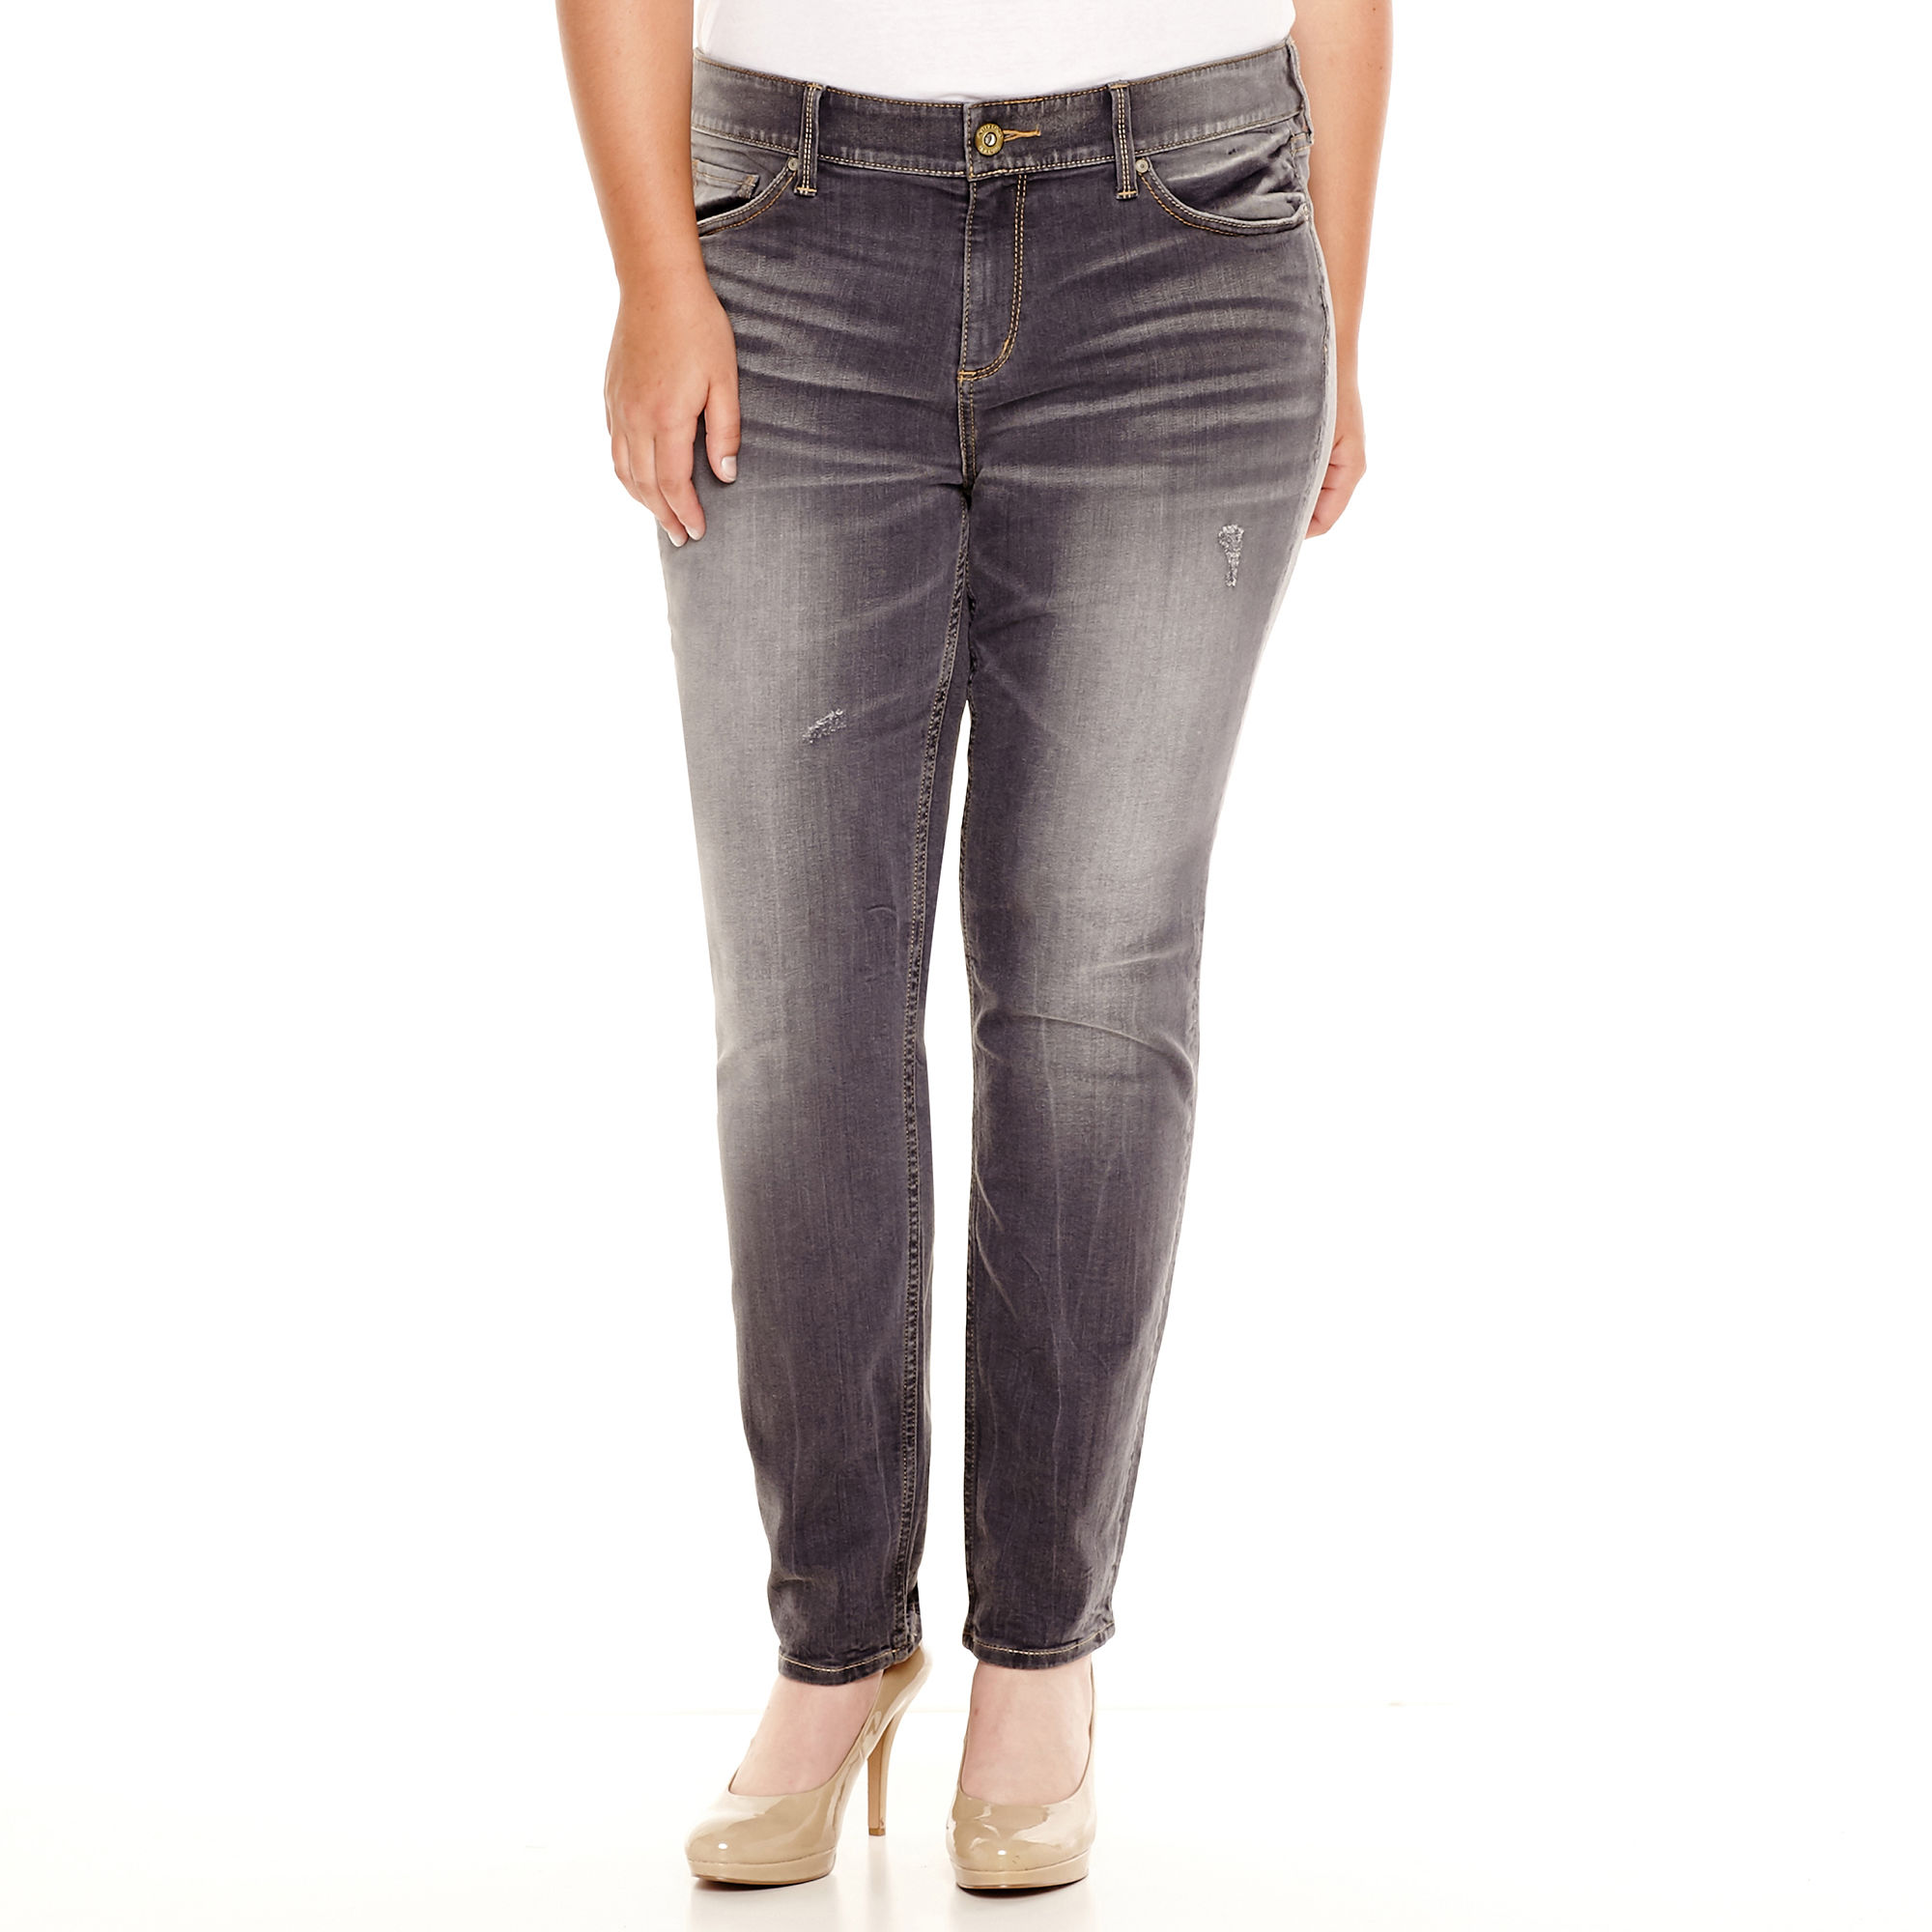 Arizona Super Skinny Jeans - Juniors Plus